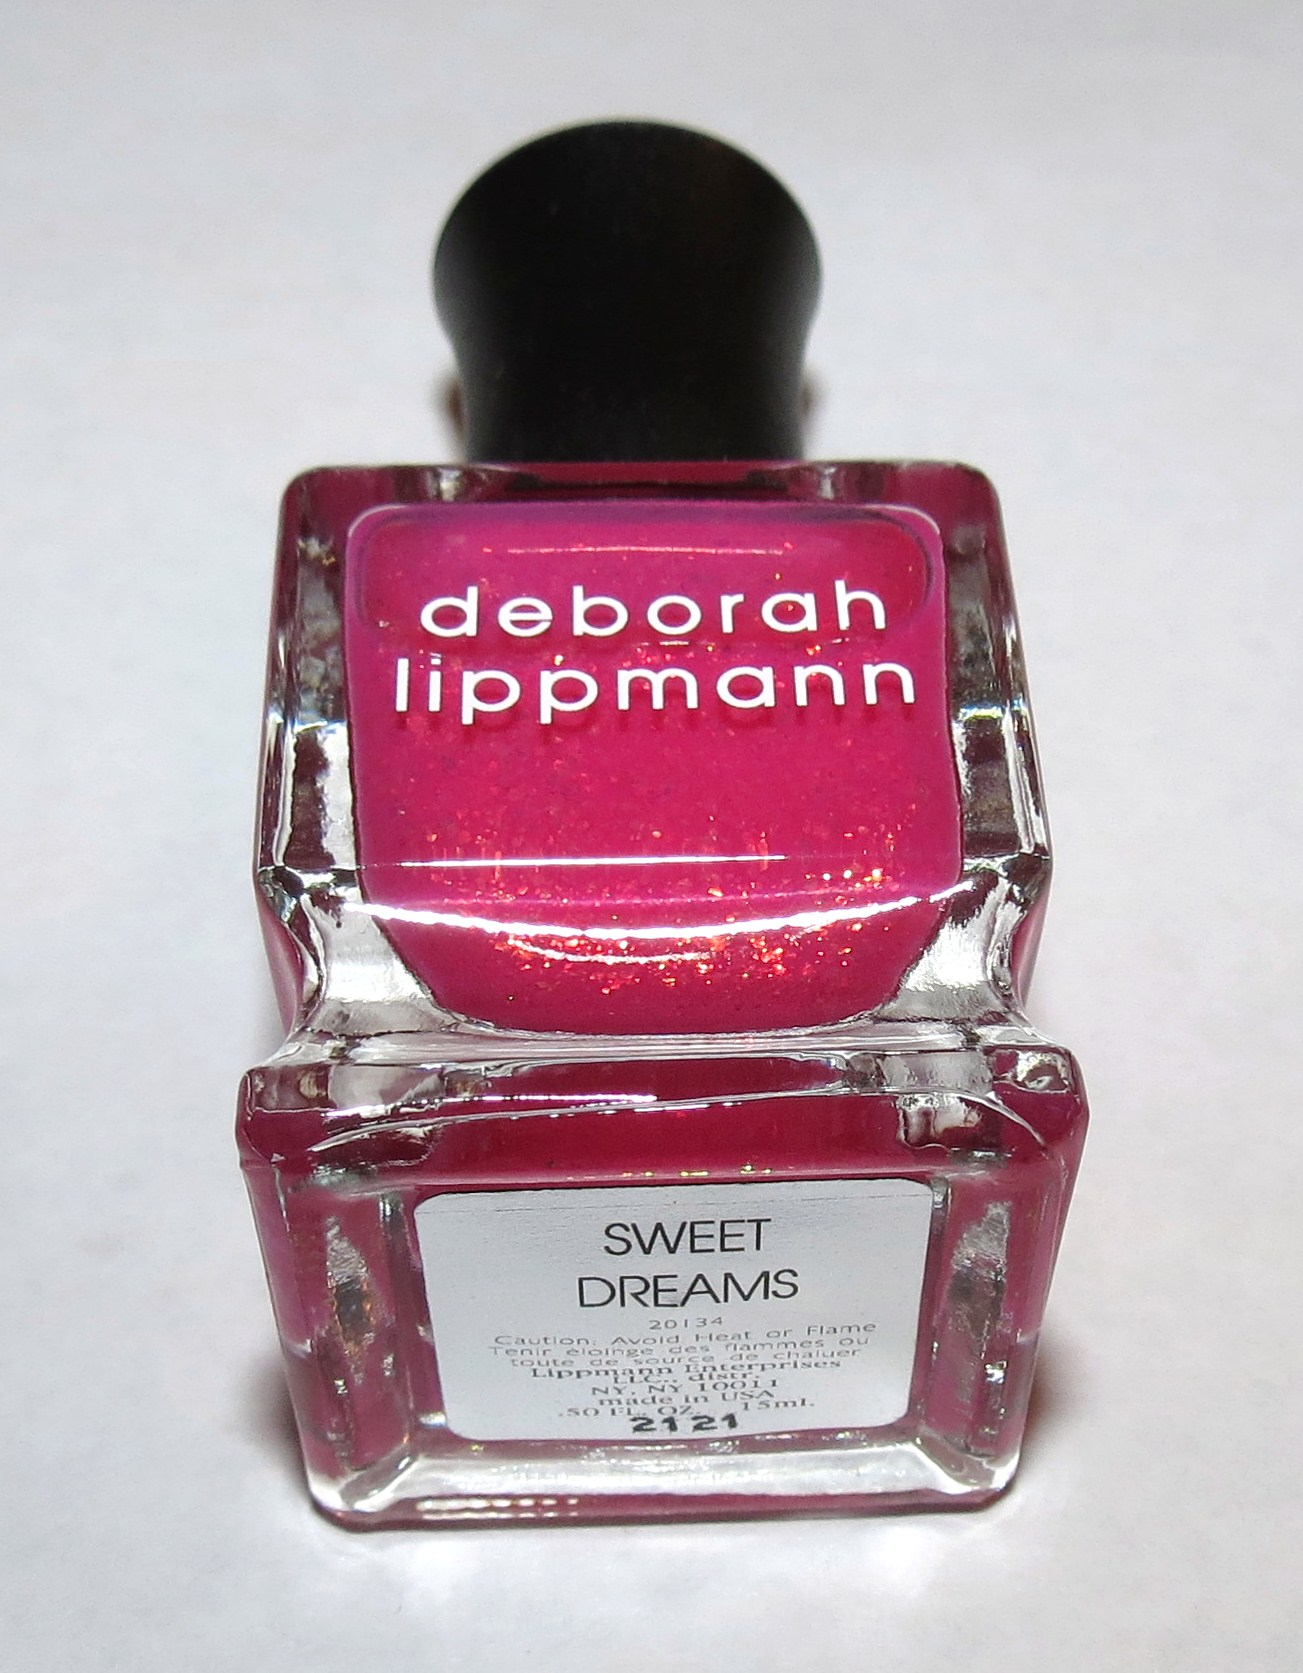 Deborah Lippmann SWEET DREAMS Nail Polish Swatches and Review - 3-D ...